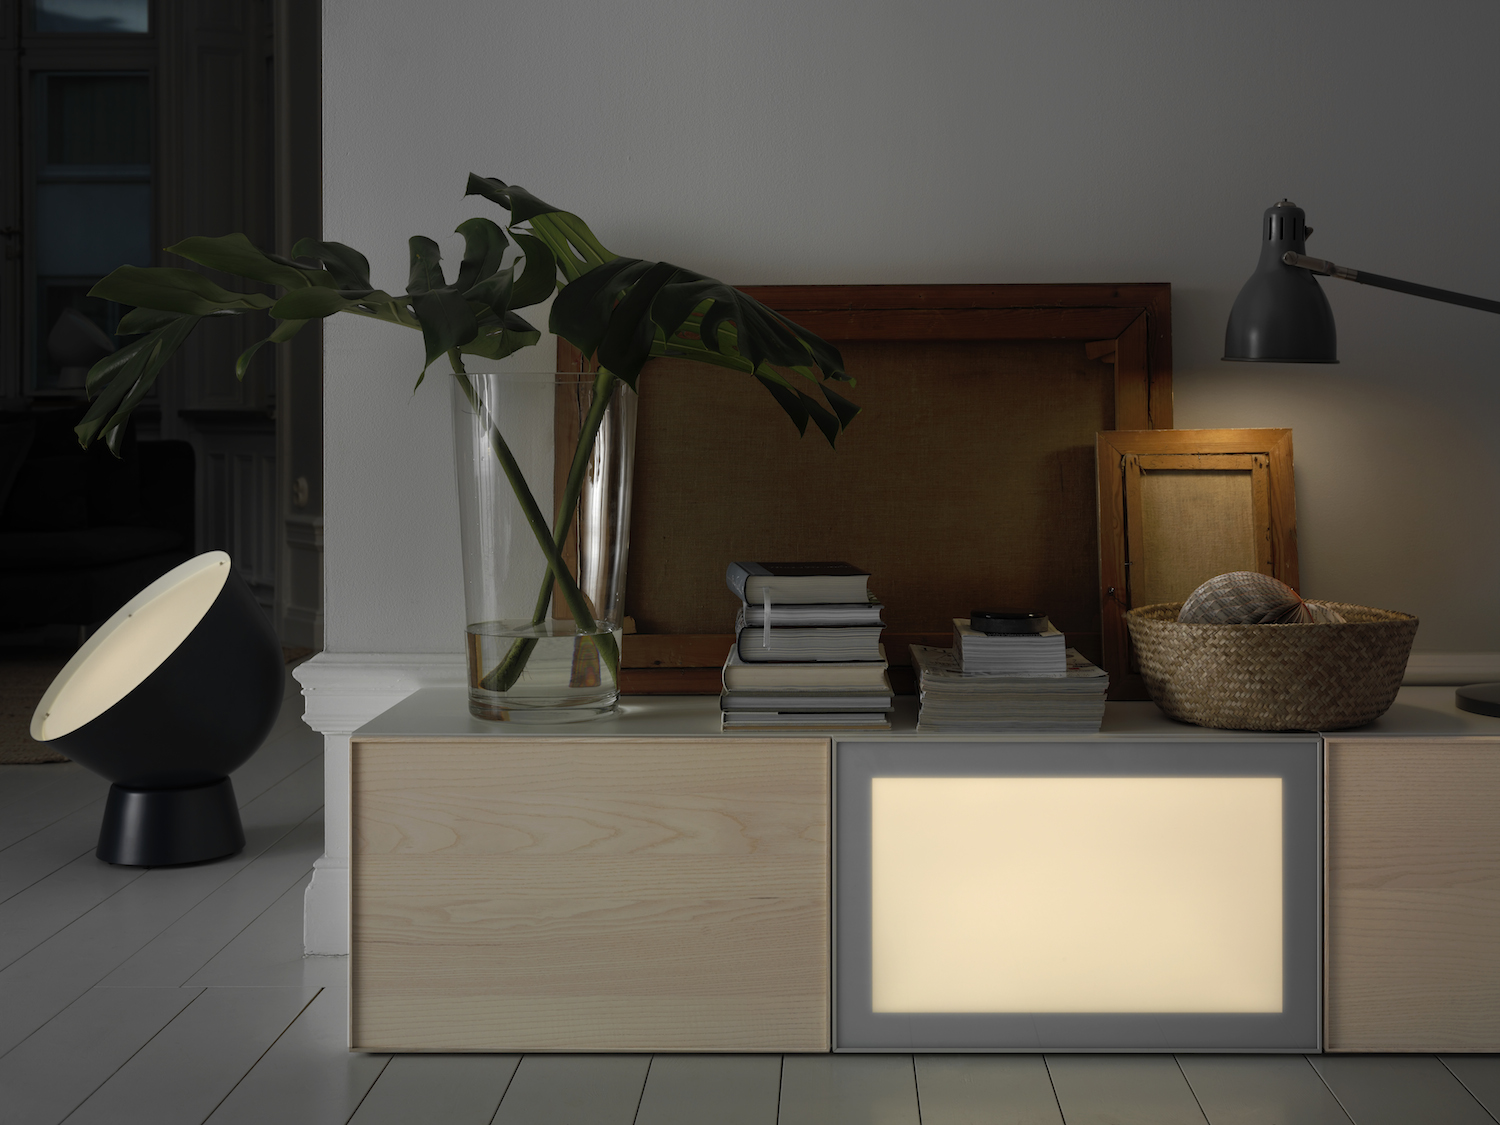 Ikea launches smart lighting collection  Curbed